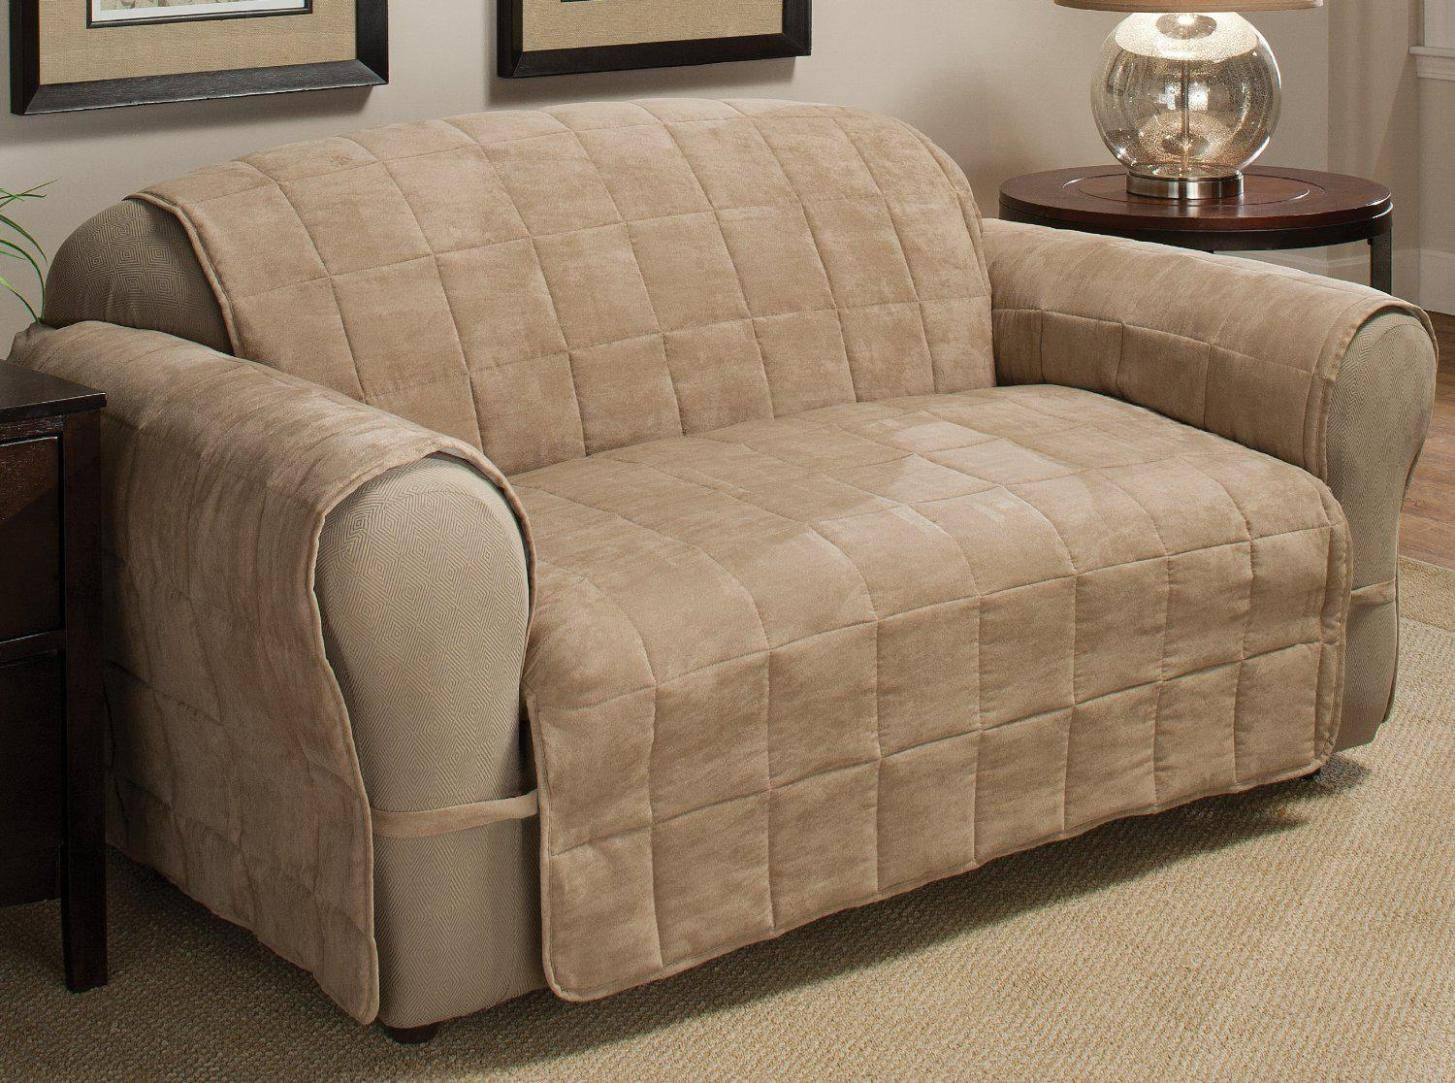 Furniture & Rug: Chic Recliner Covers For Prettier Recliner Ideas regarding Sofa and Chair Covers (Image 9 of 30)